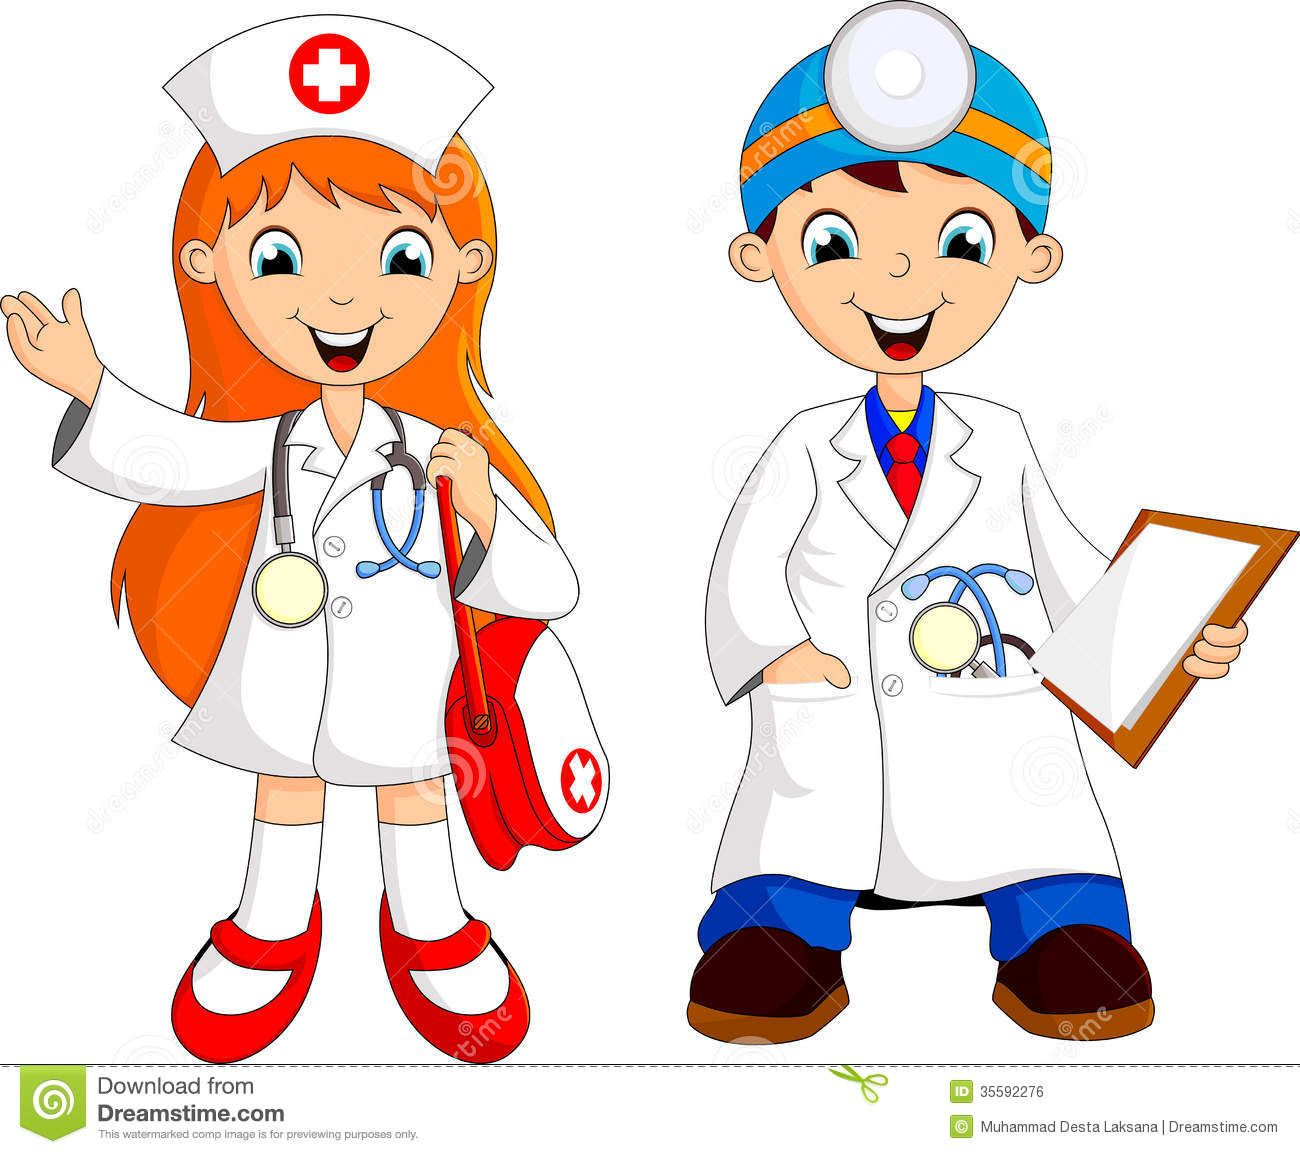 image transparent library Cute doctor kid medical. Doctors clipart